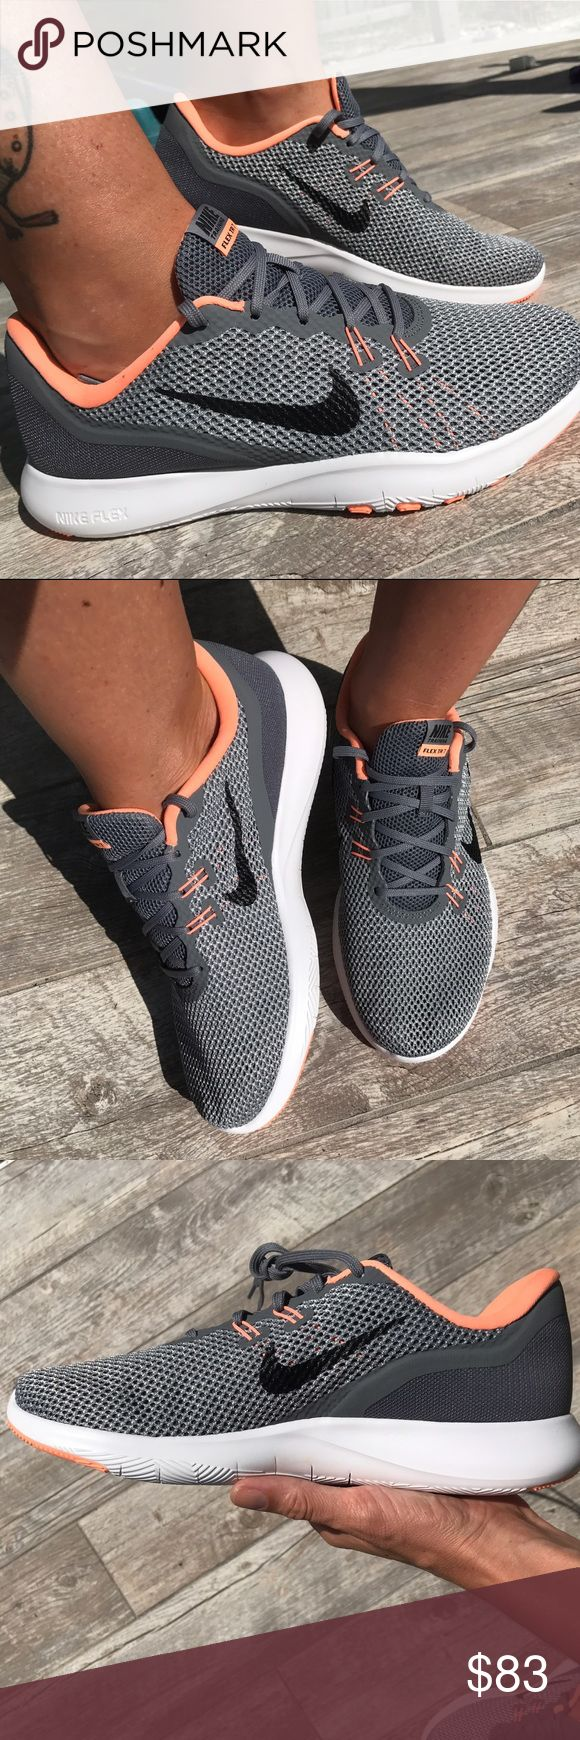 🔘Silver-Coral 🔘New very comfortable sneakers Silver-Coral 🔘Training💪🏻 New very comfortable sneakers ..so soft and light weight. Nike Shoes Sneakers